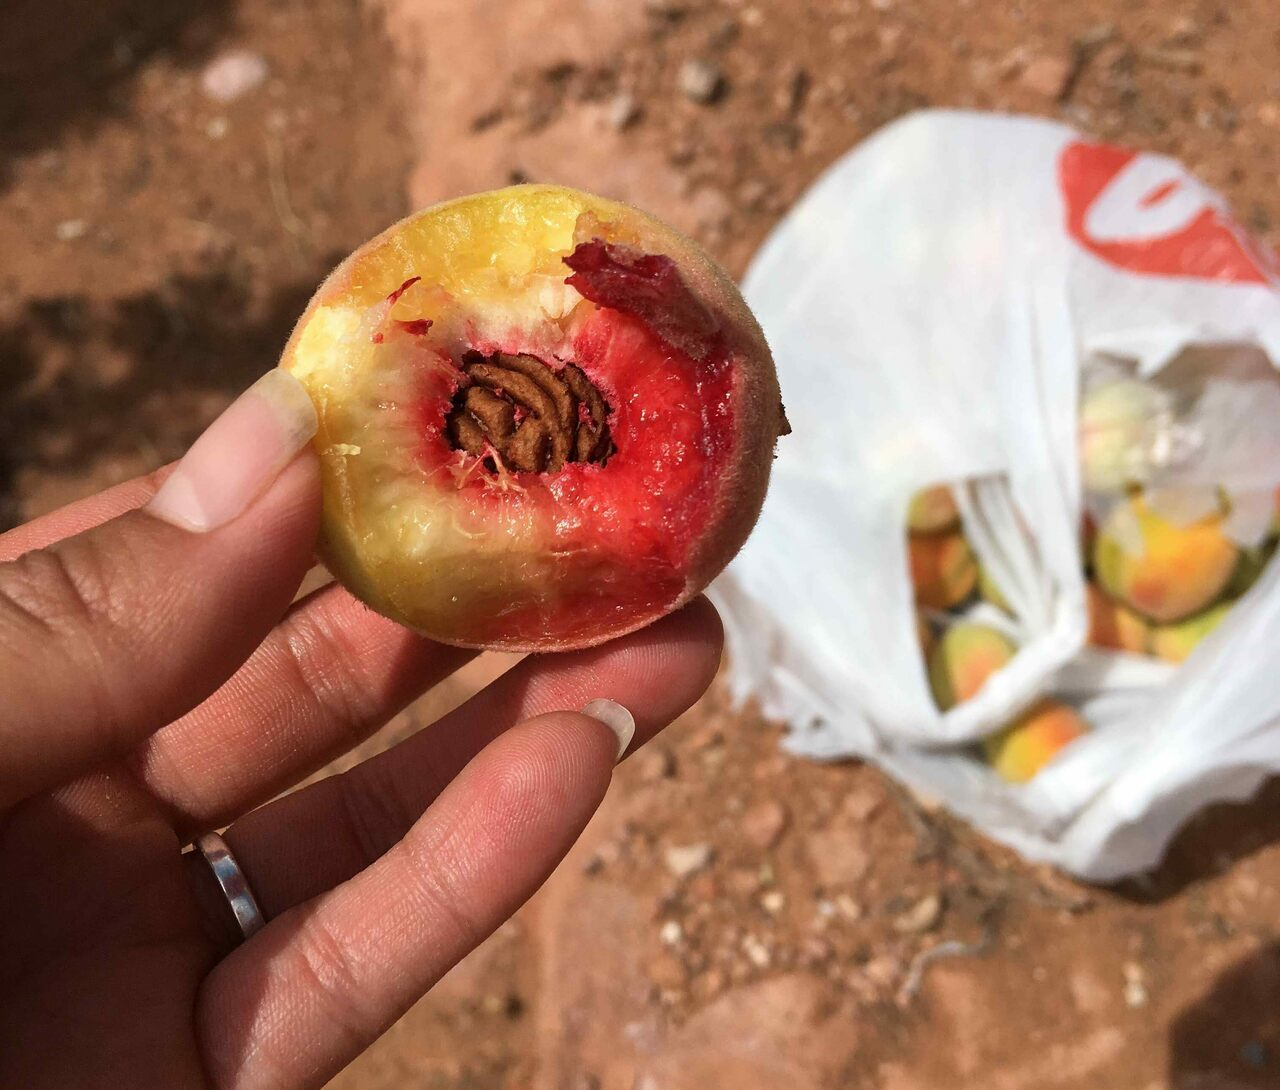 These small peaches once flourished widely over the Southwest.